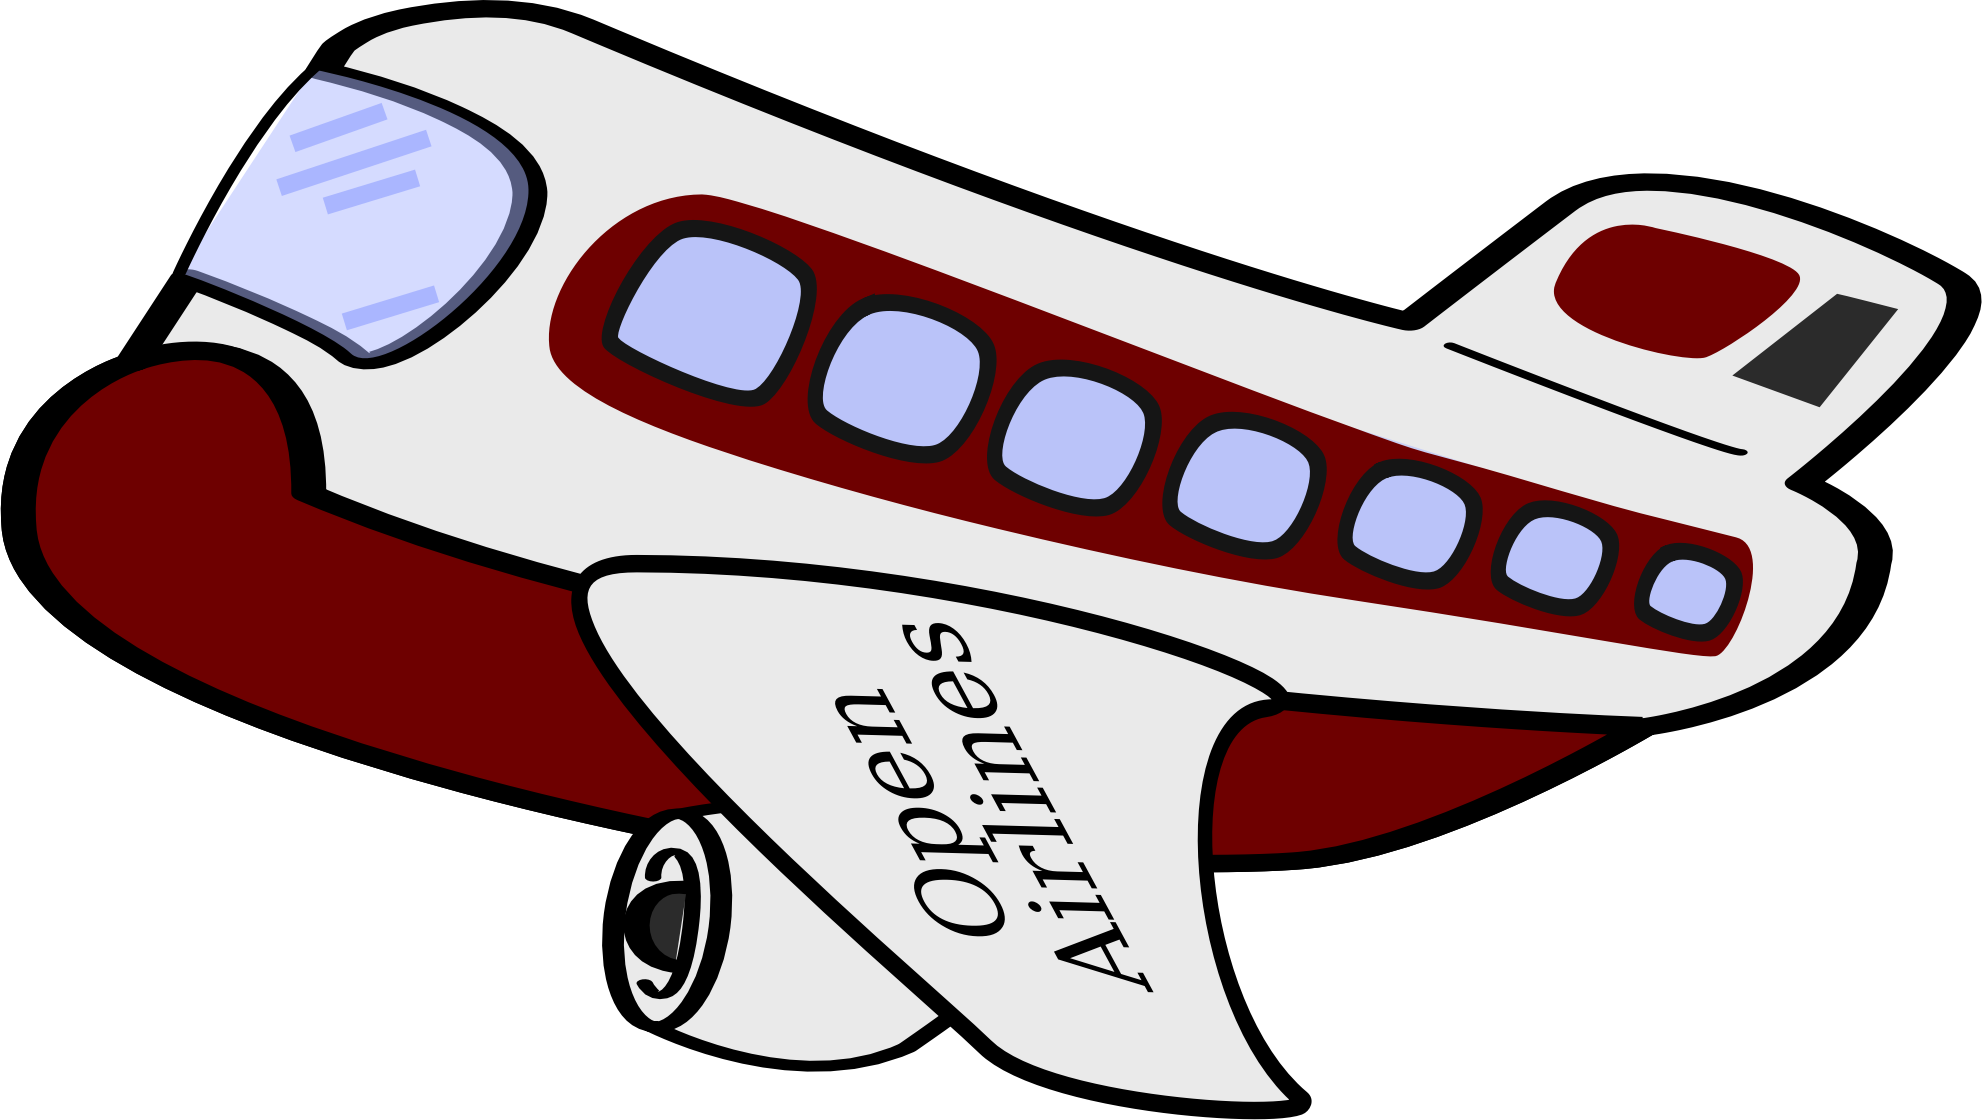 Airplane clipart funny Funny airplane airplane Clipart funny